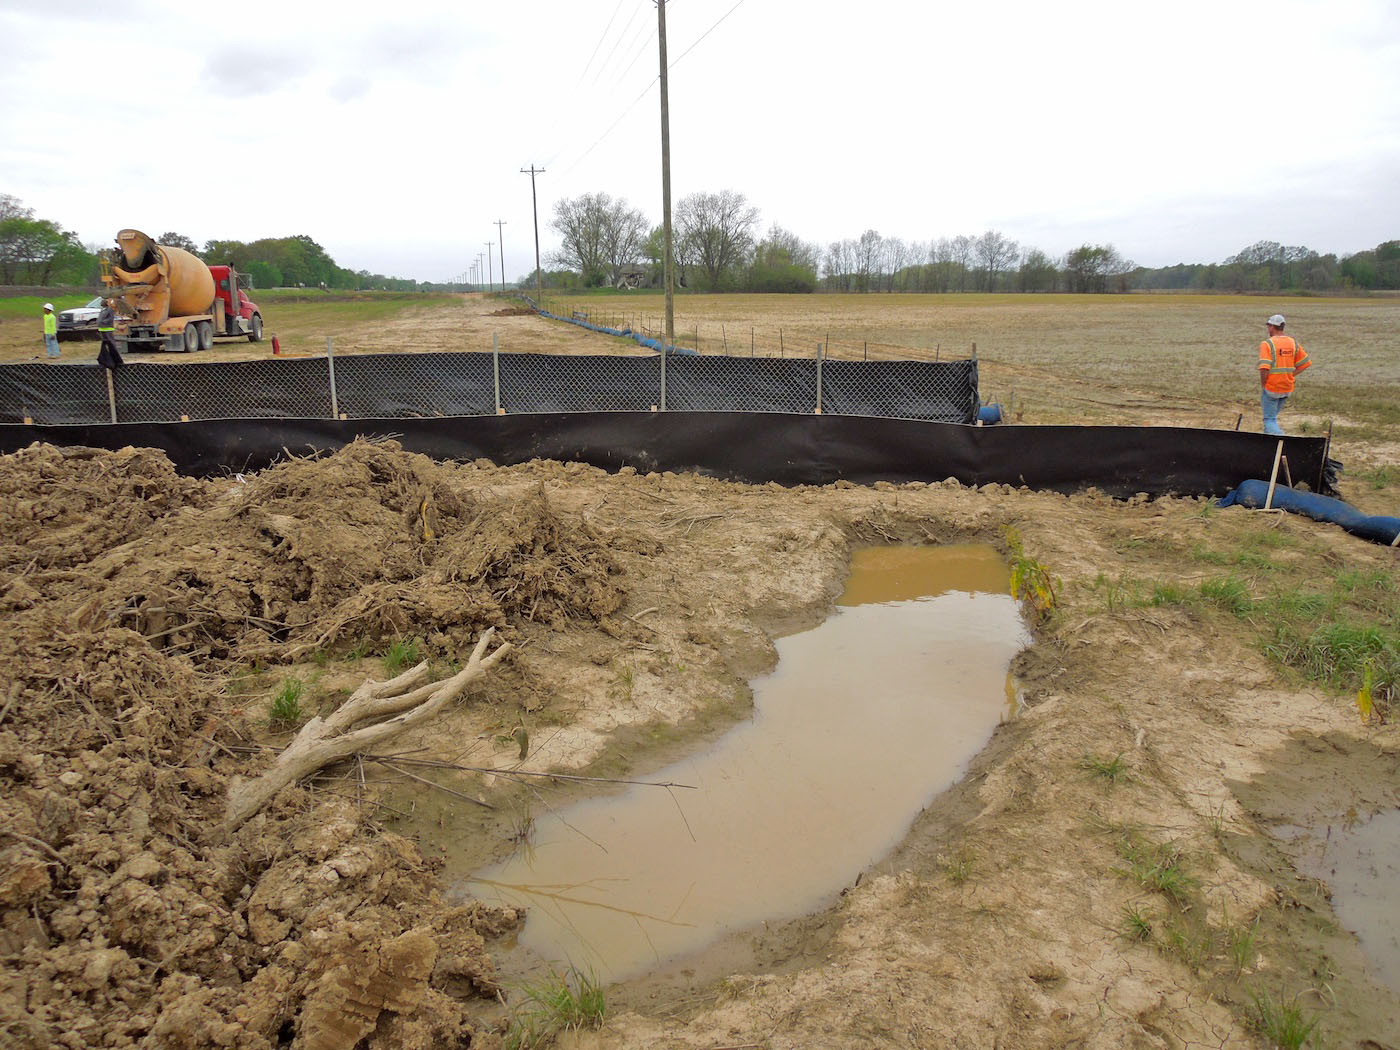 Siltron product being used for sediment control